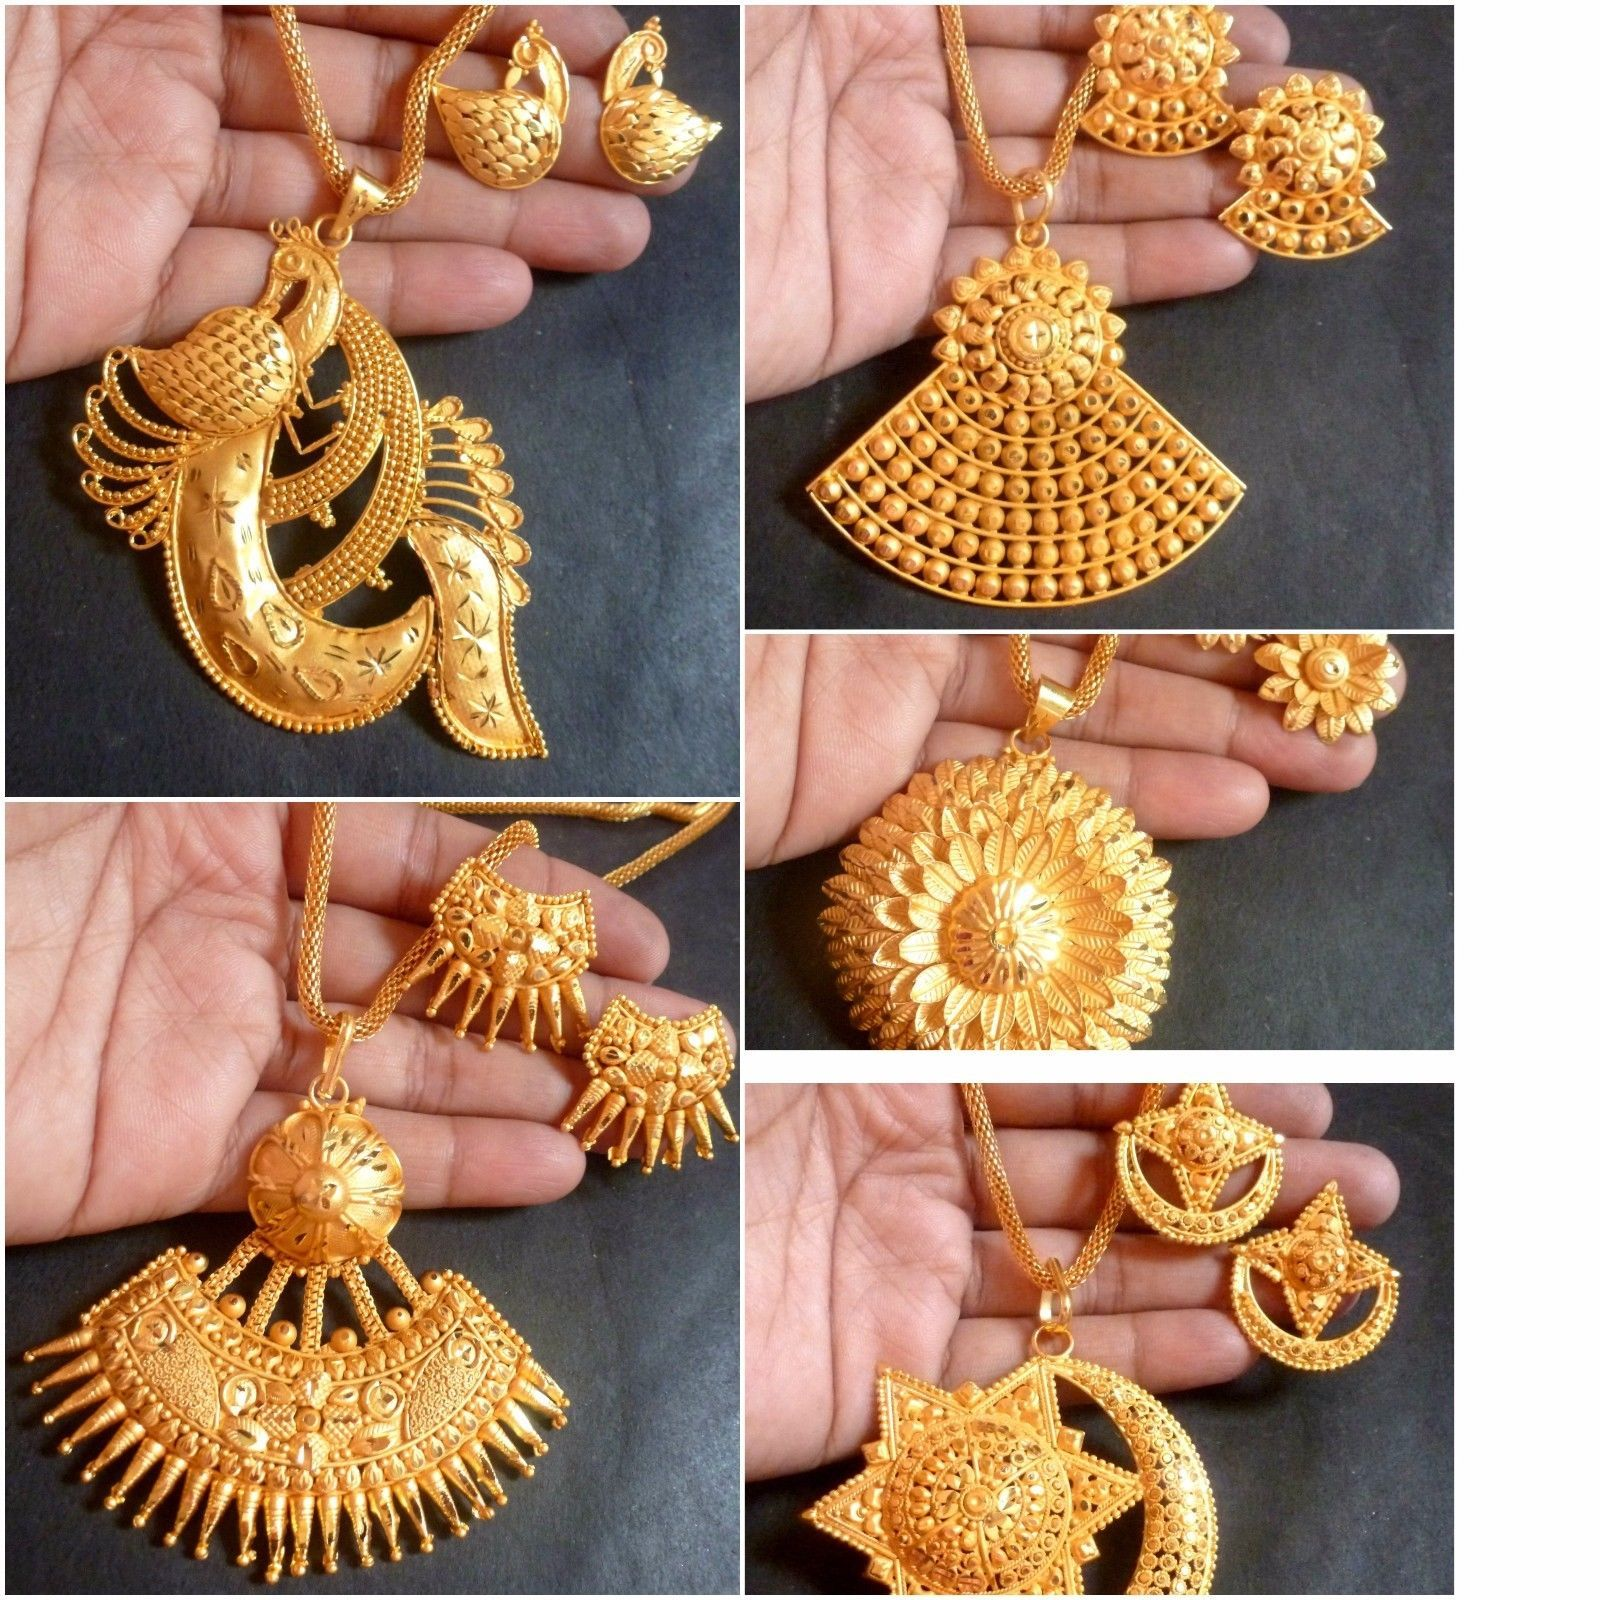 Indian 22k Gold Plated Bridal Necklace 8 Pendant Earrings